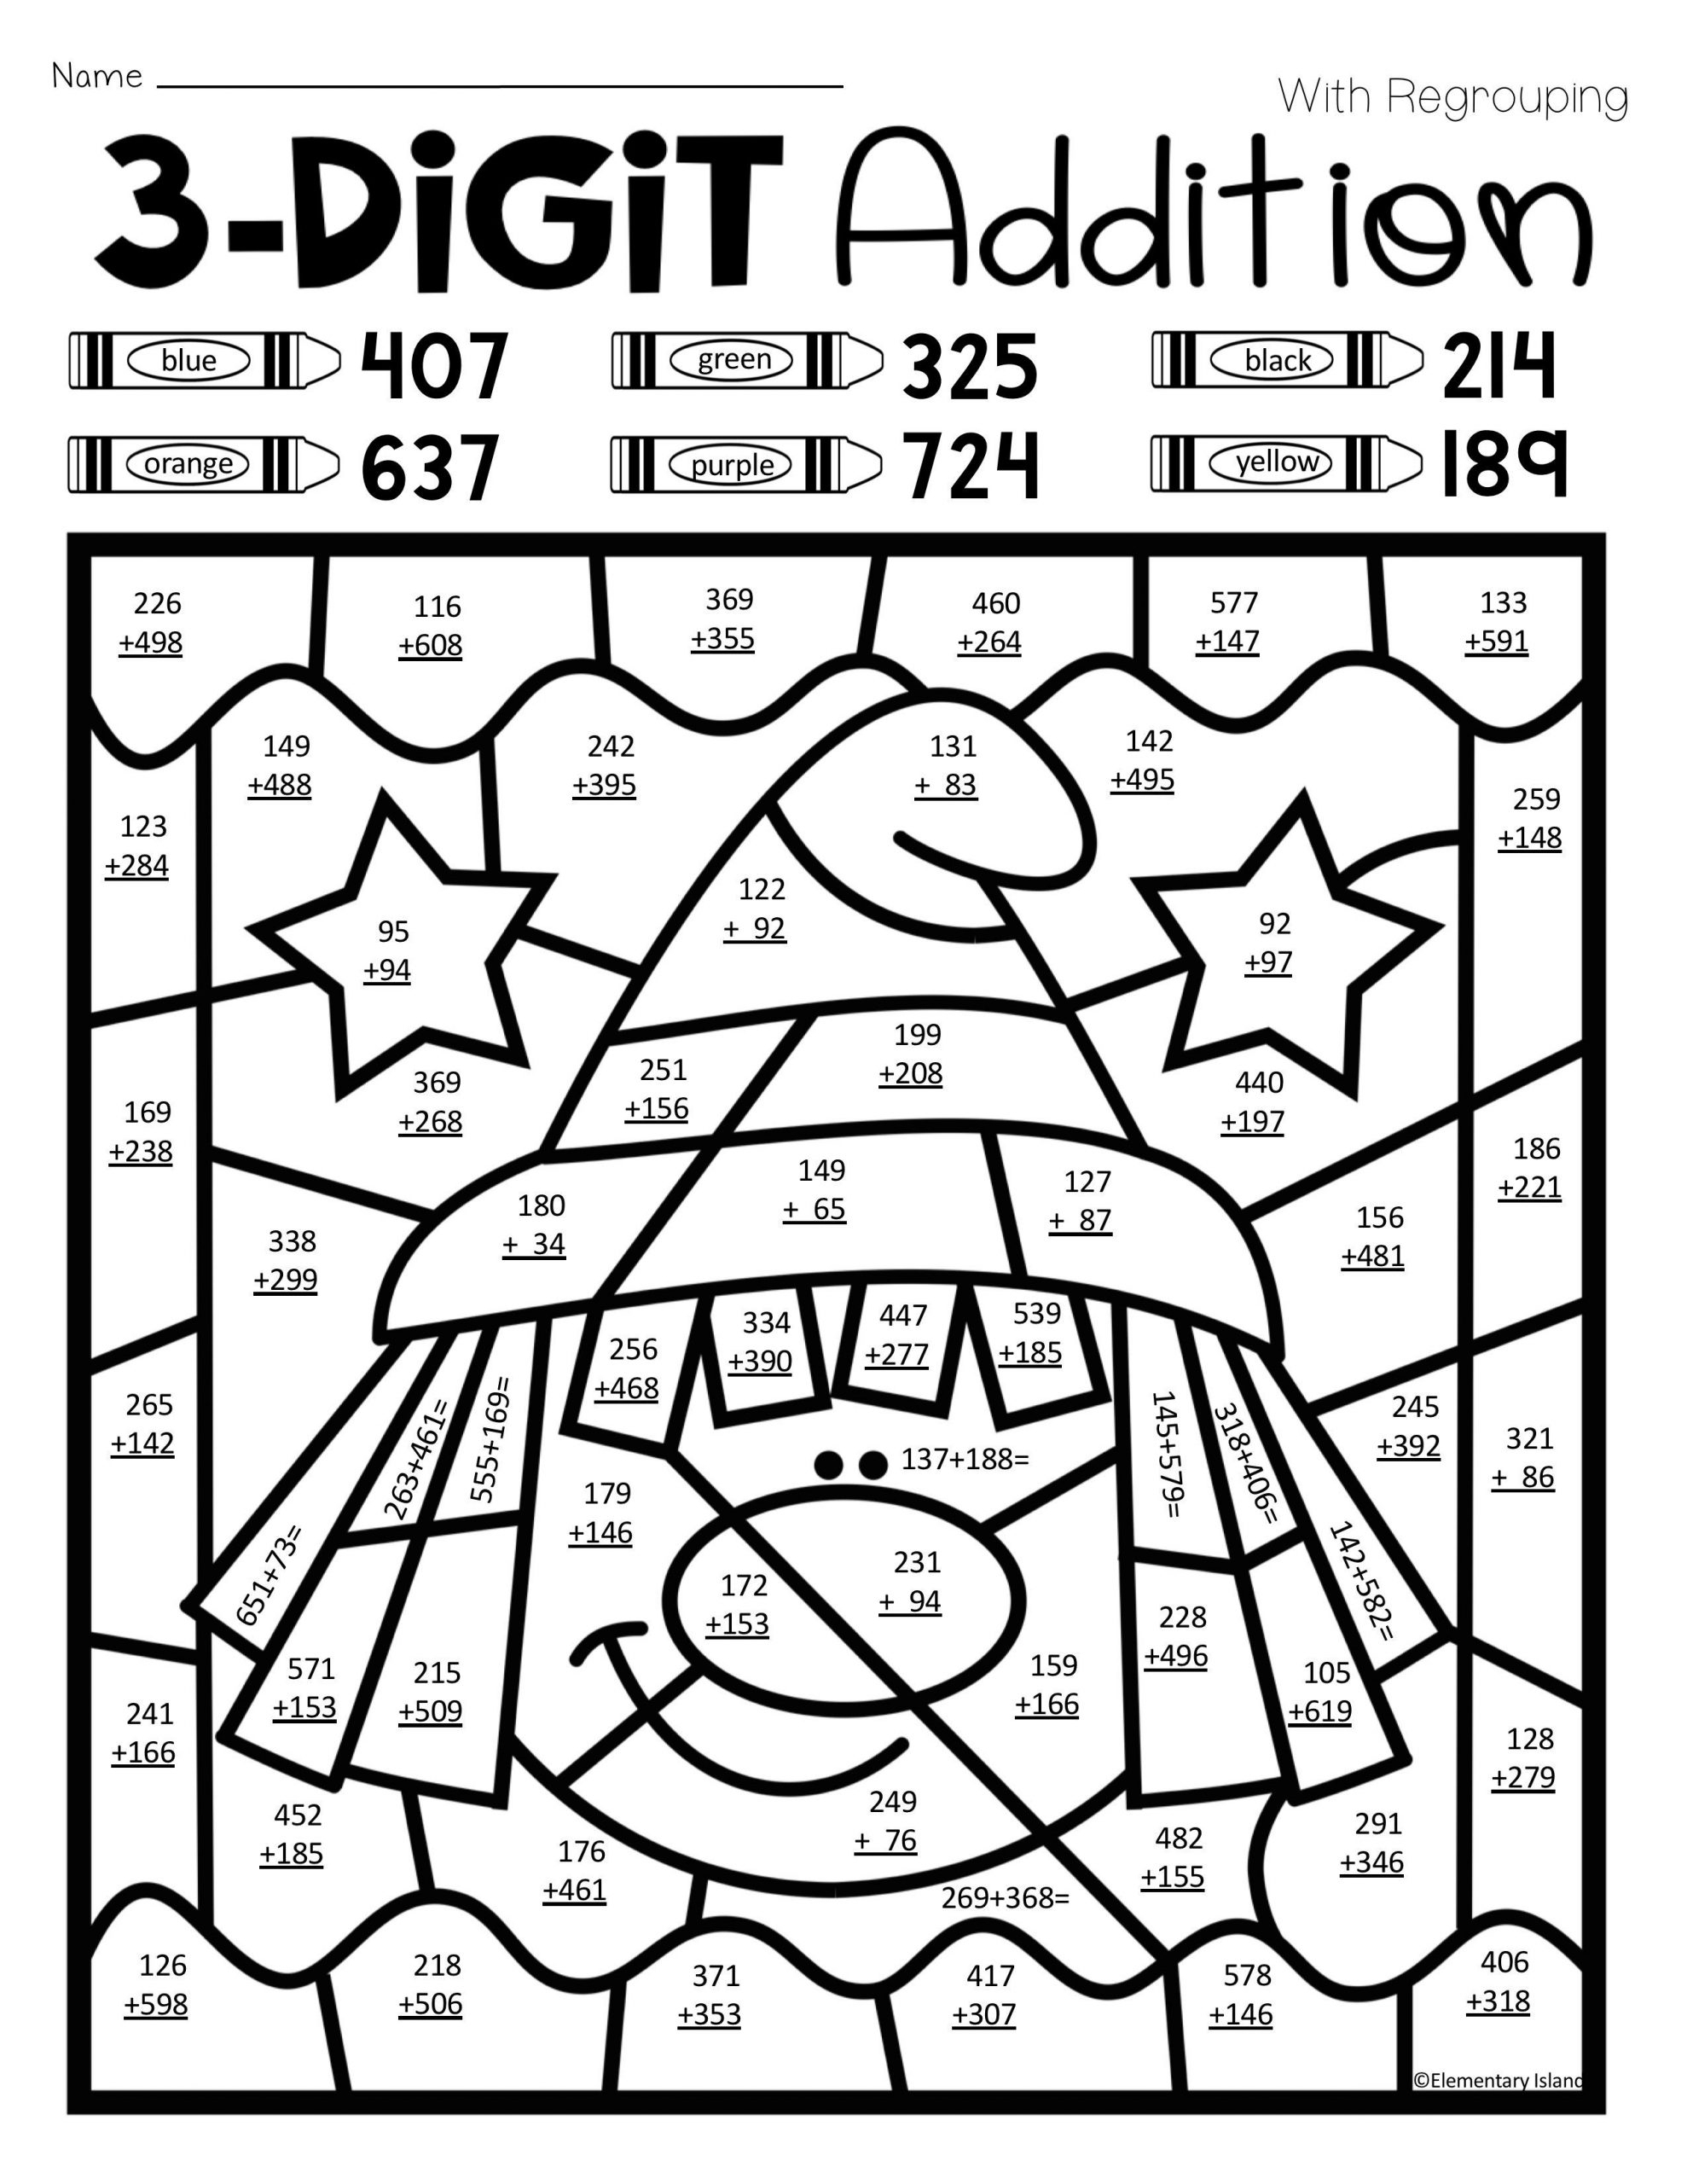 Coloring Pages : Coloring Pages Color Math For Kids for Printable Multiplication Color By Number Sheets